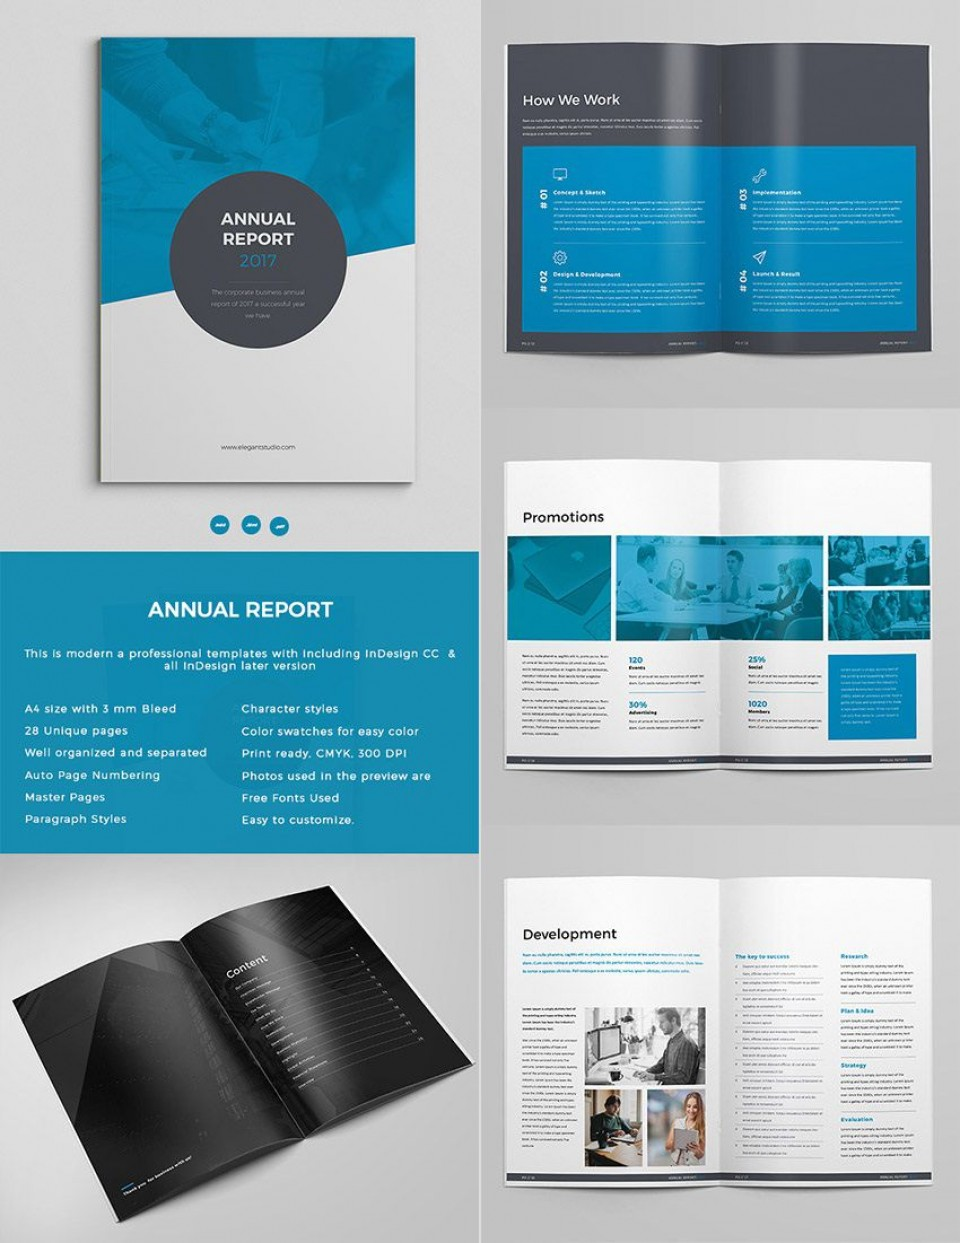 005 Marvelou Free Annual Report Template Indesign Image  Adobe Non Profit960